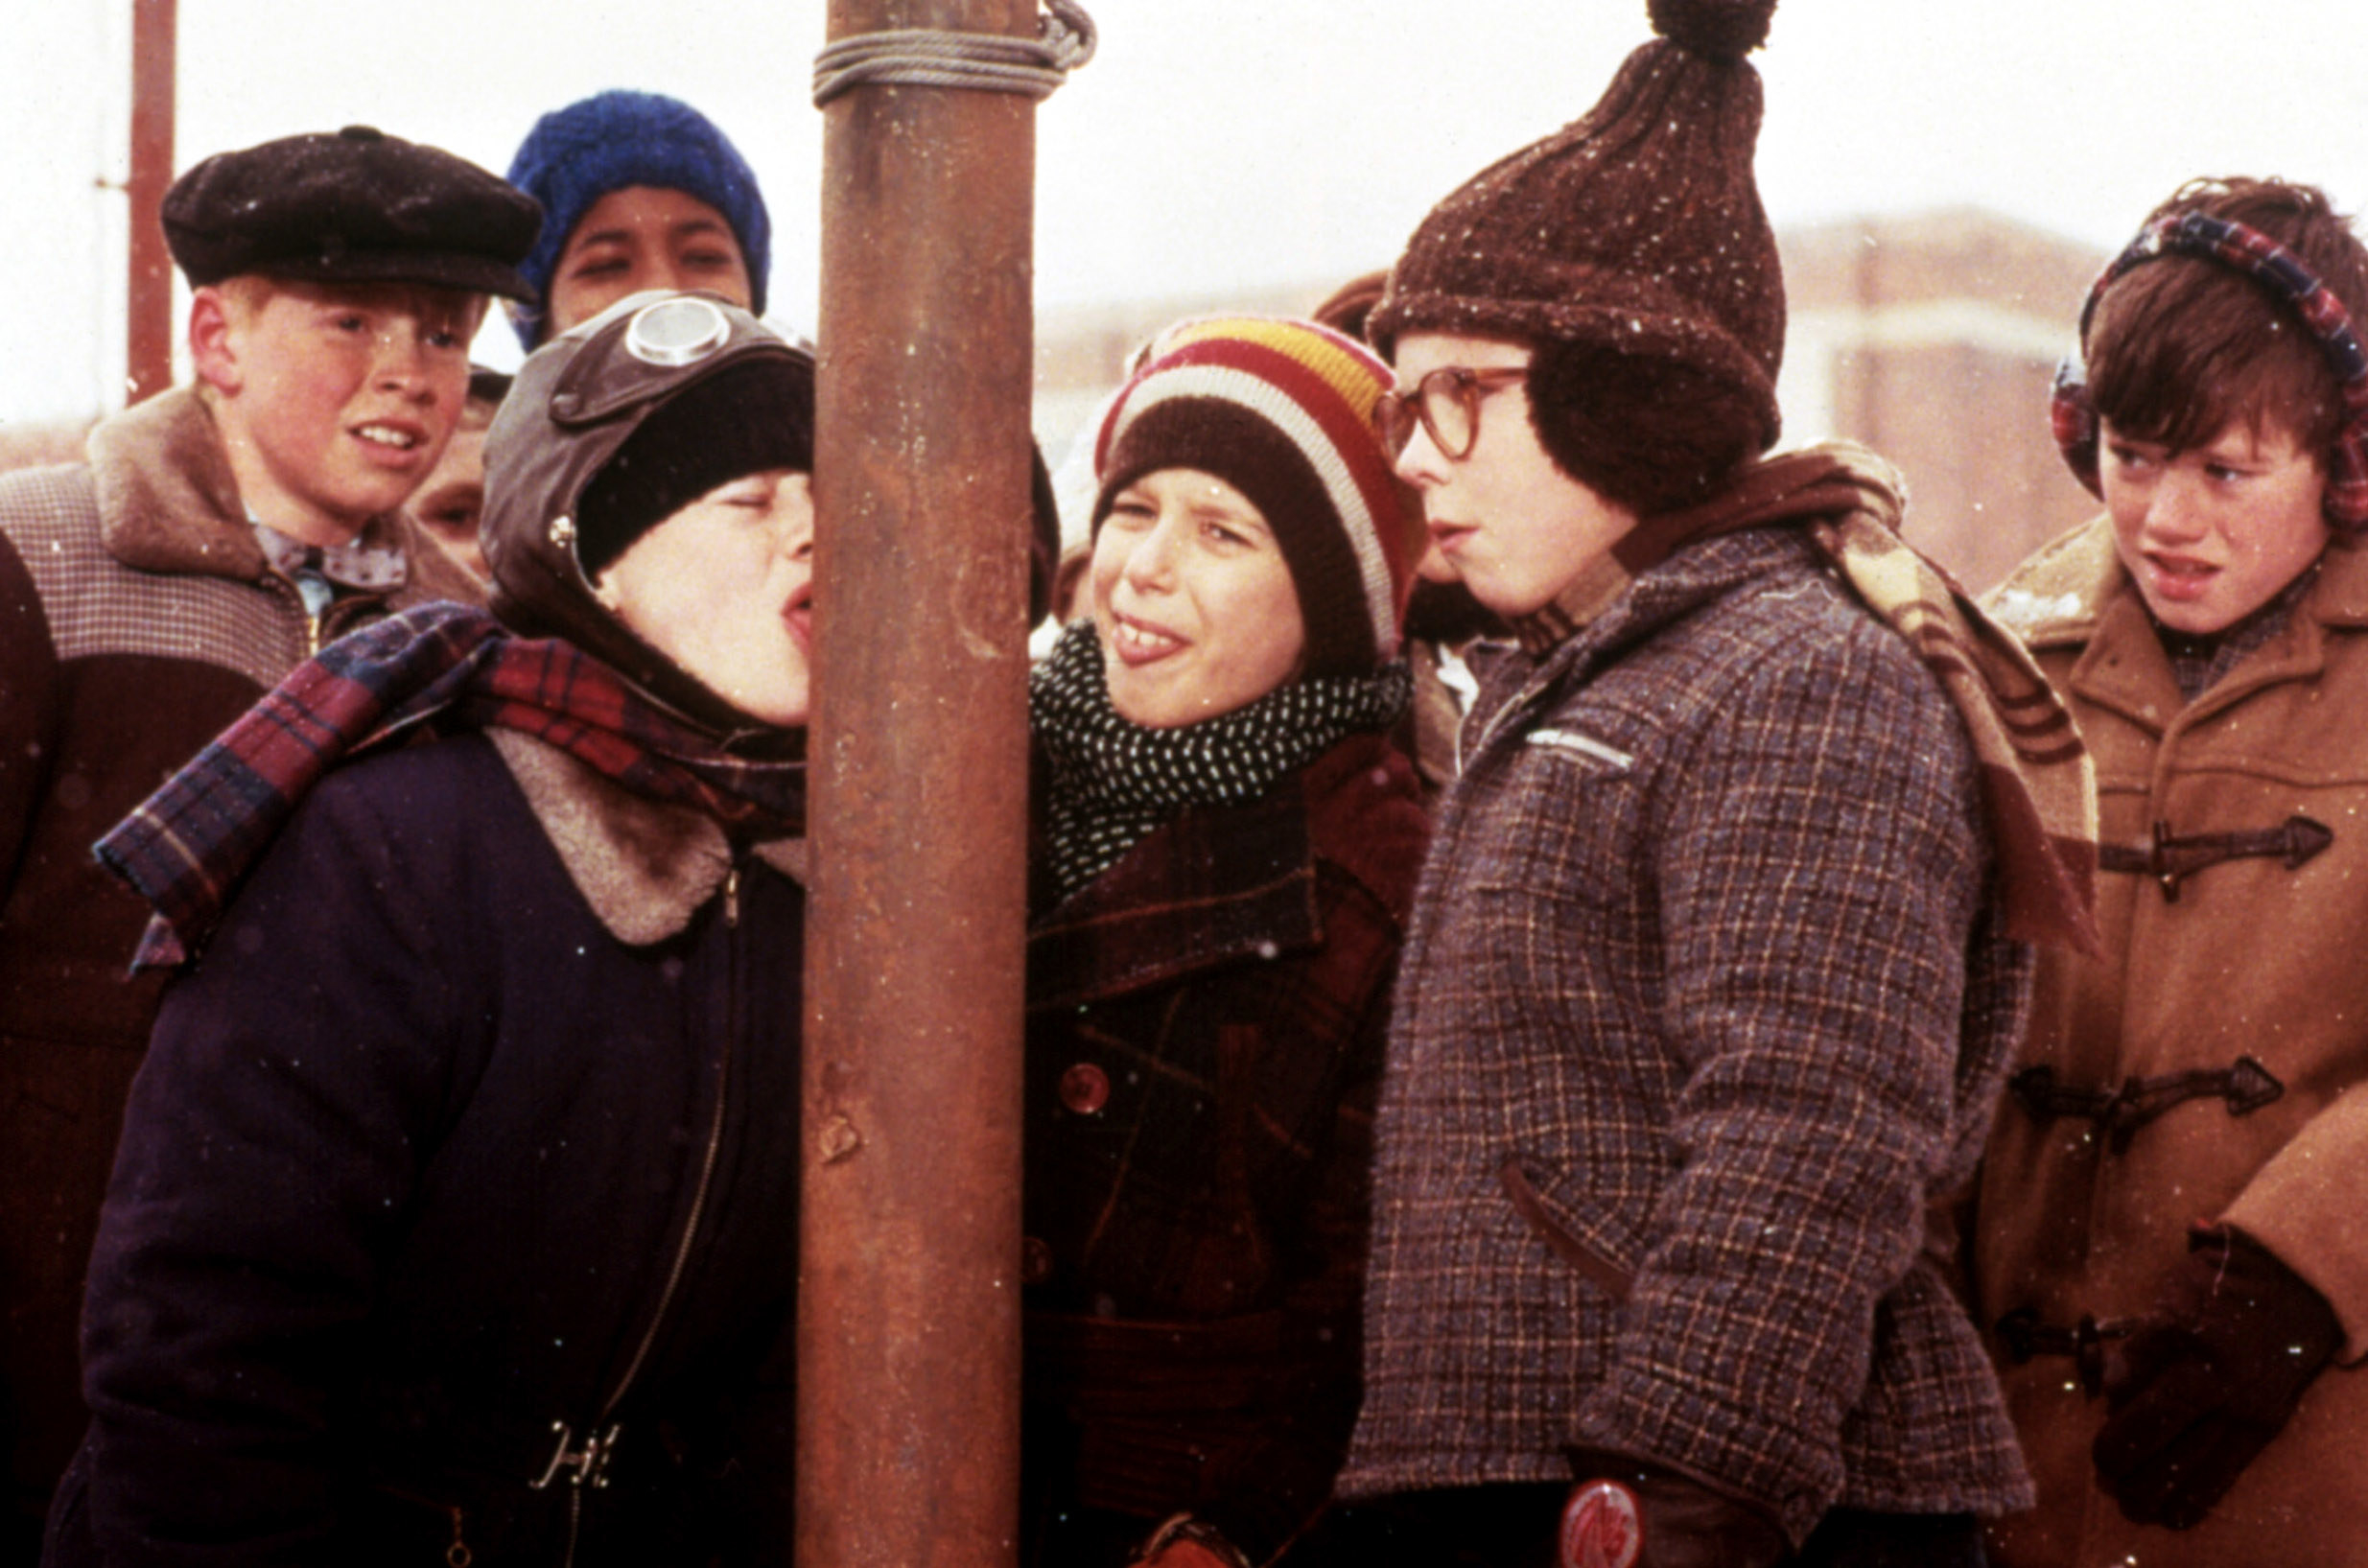 """The iconic """"A Christmas Story"""" scene where Flick gets his tongue stuck on a pole"""